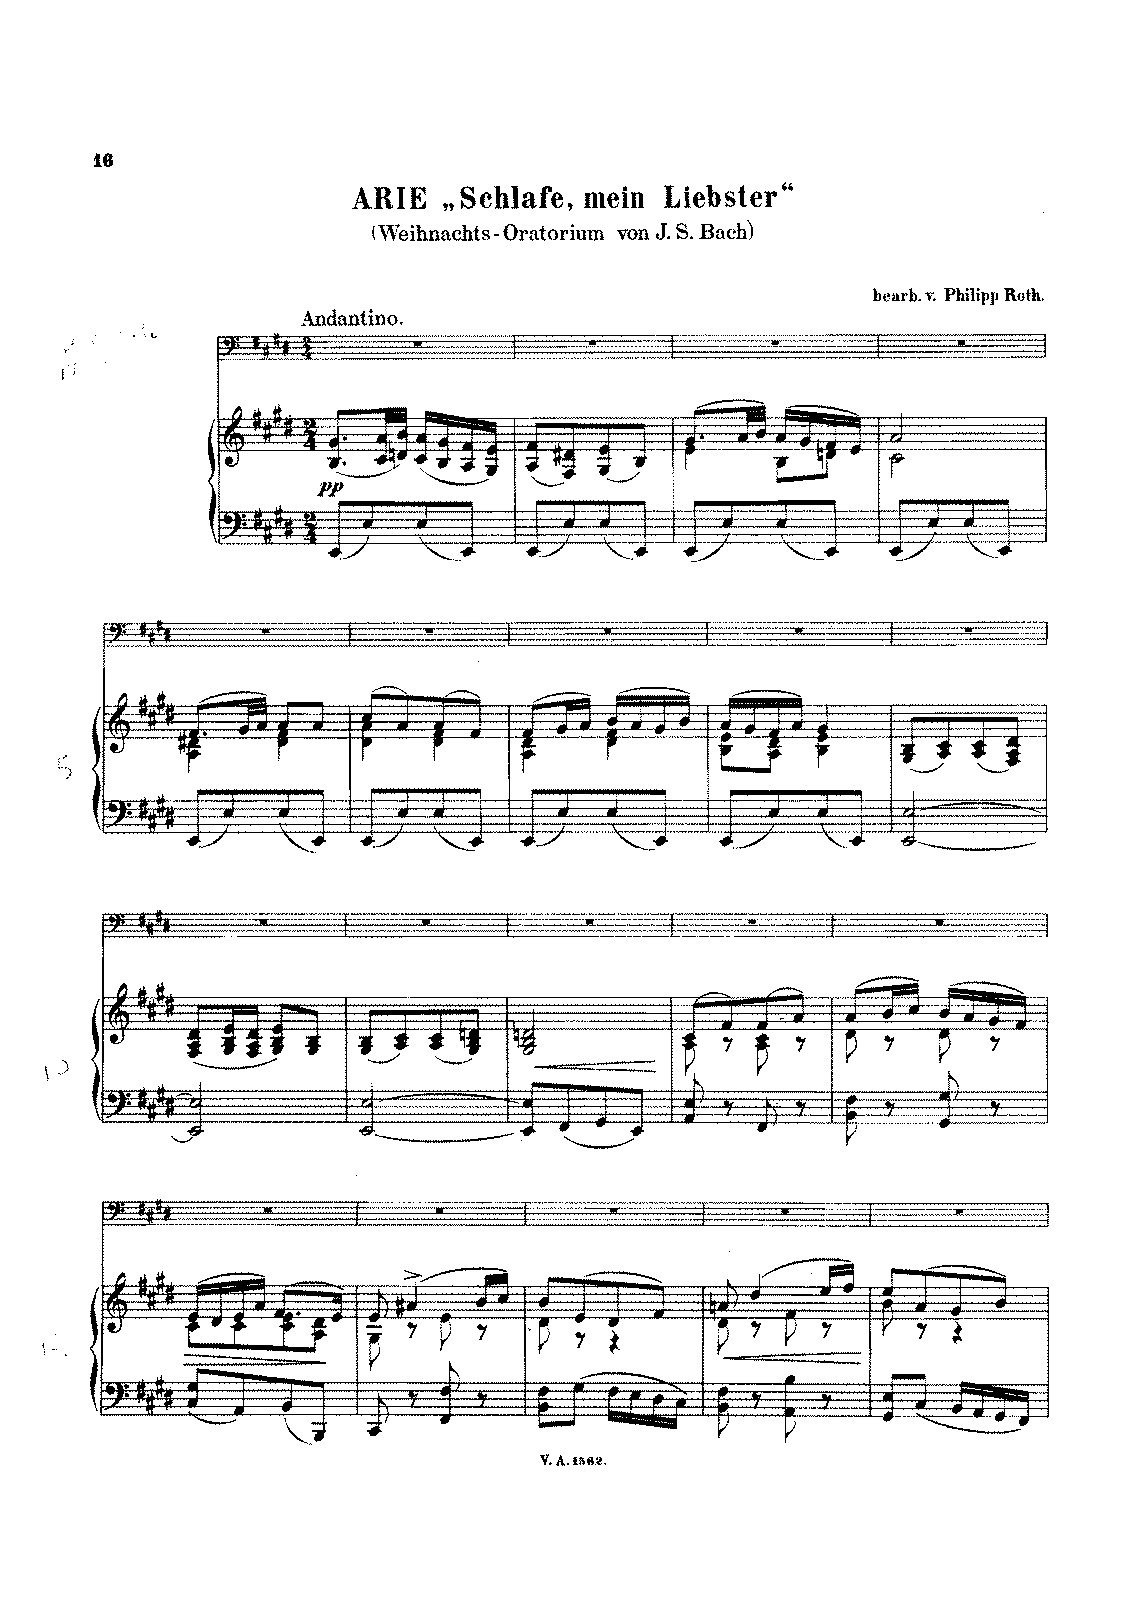 PMLP06314-Bach - Aria Schlafe mein Liebster from Christmas Oratorium (Roth) Cello Piano score.pdf